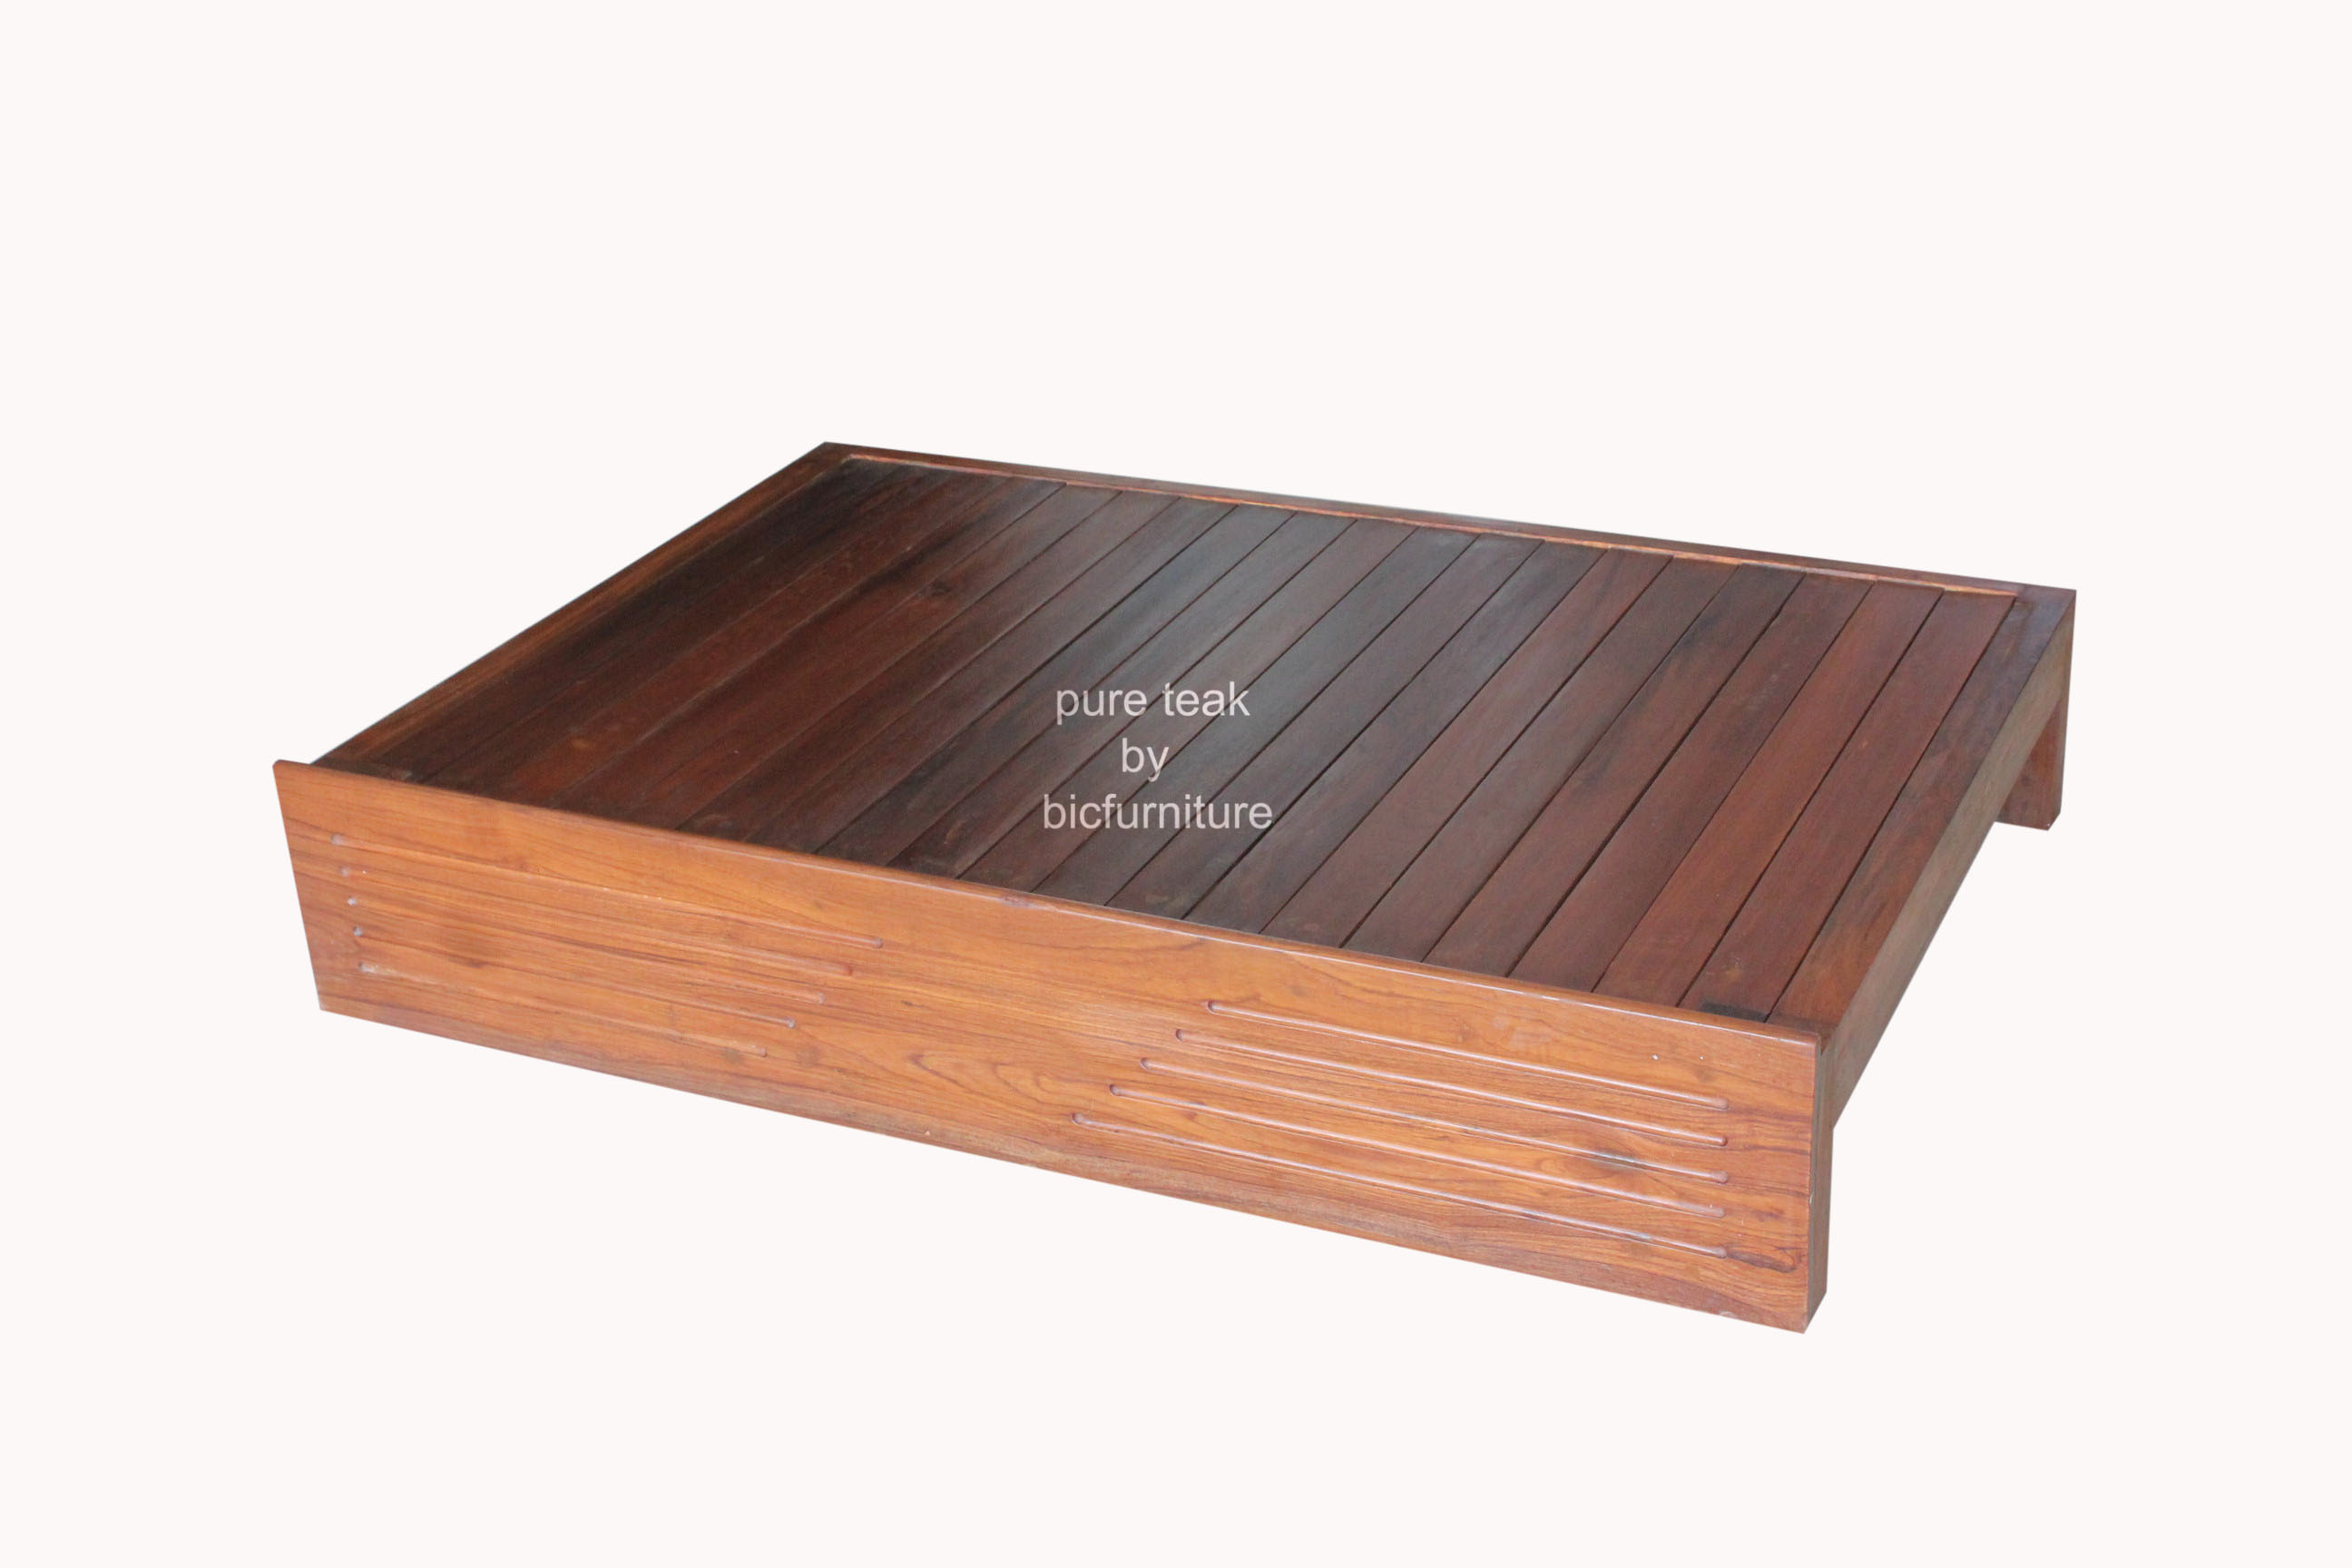 Very Impressive portraiture of Buy Wooden Furniture from manufacturers Indian Furniture online with #9E562D color and 2592x1728 pixels